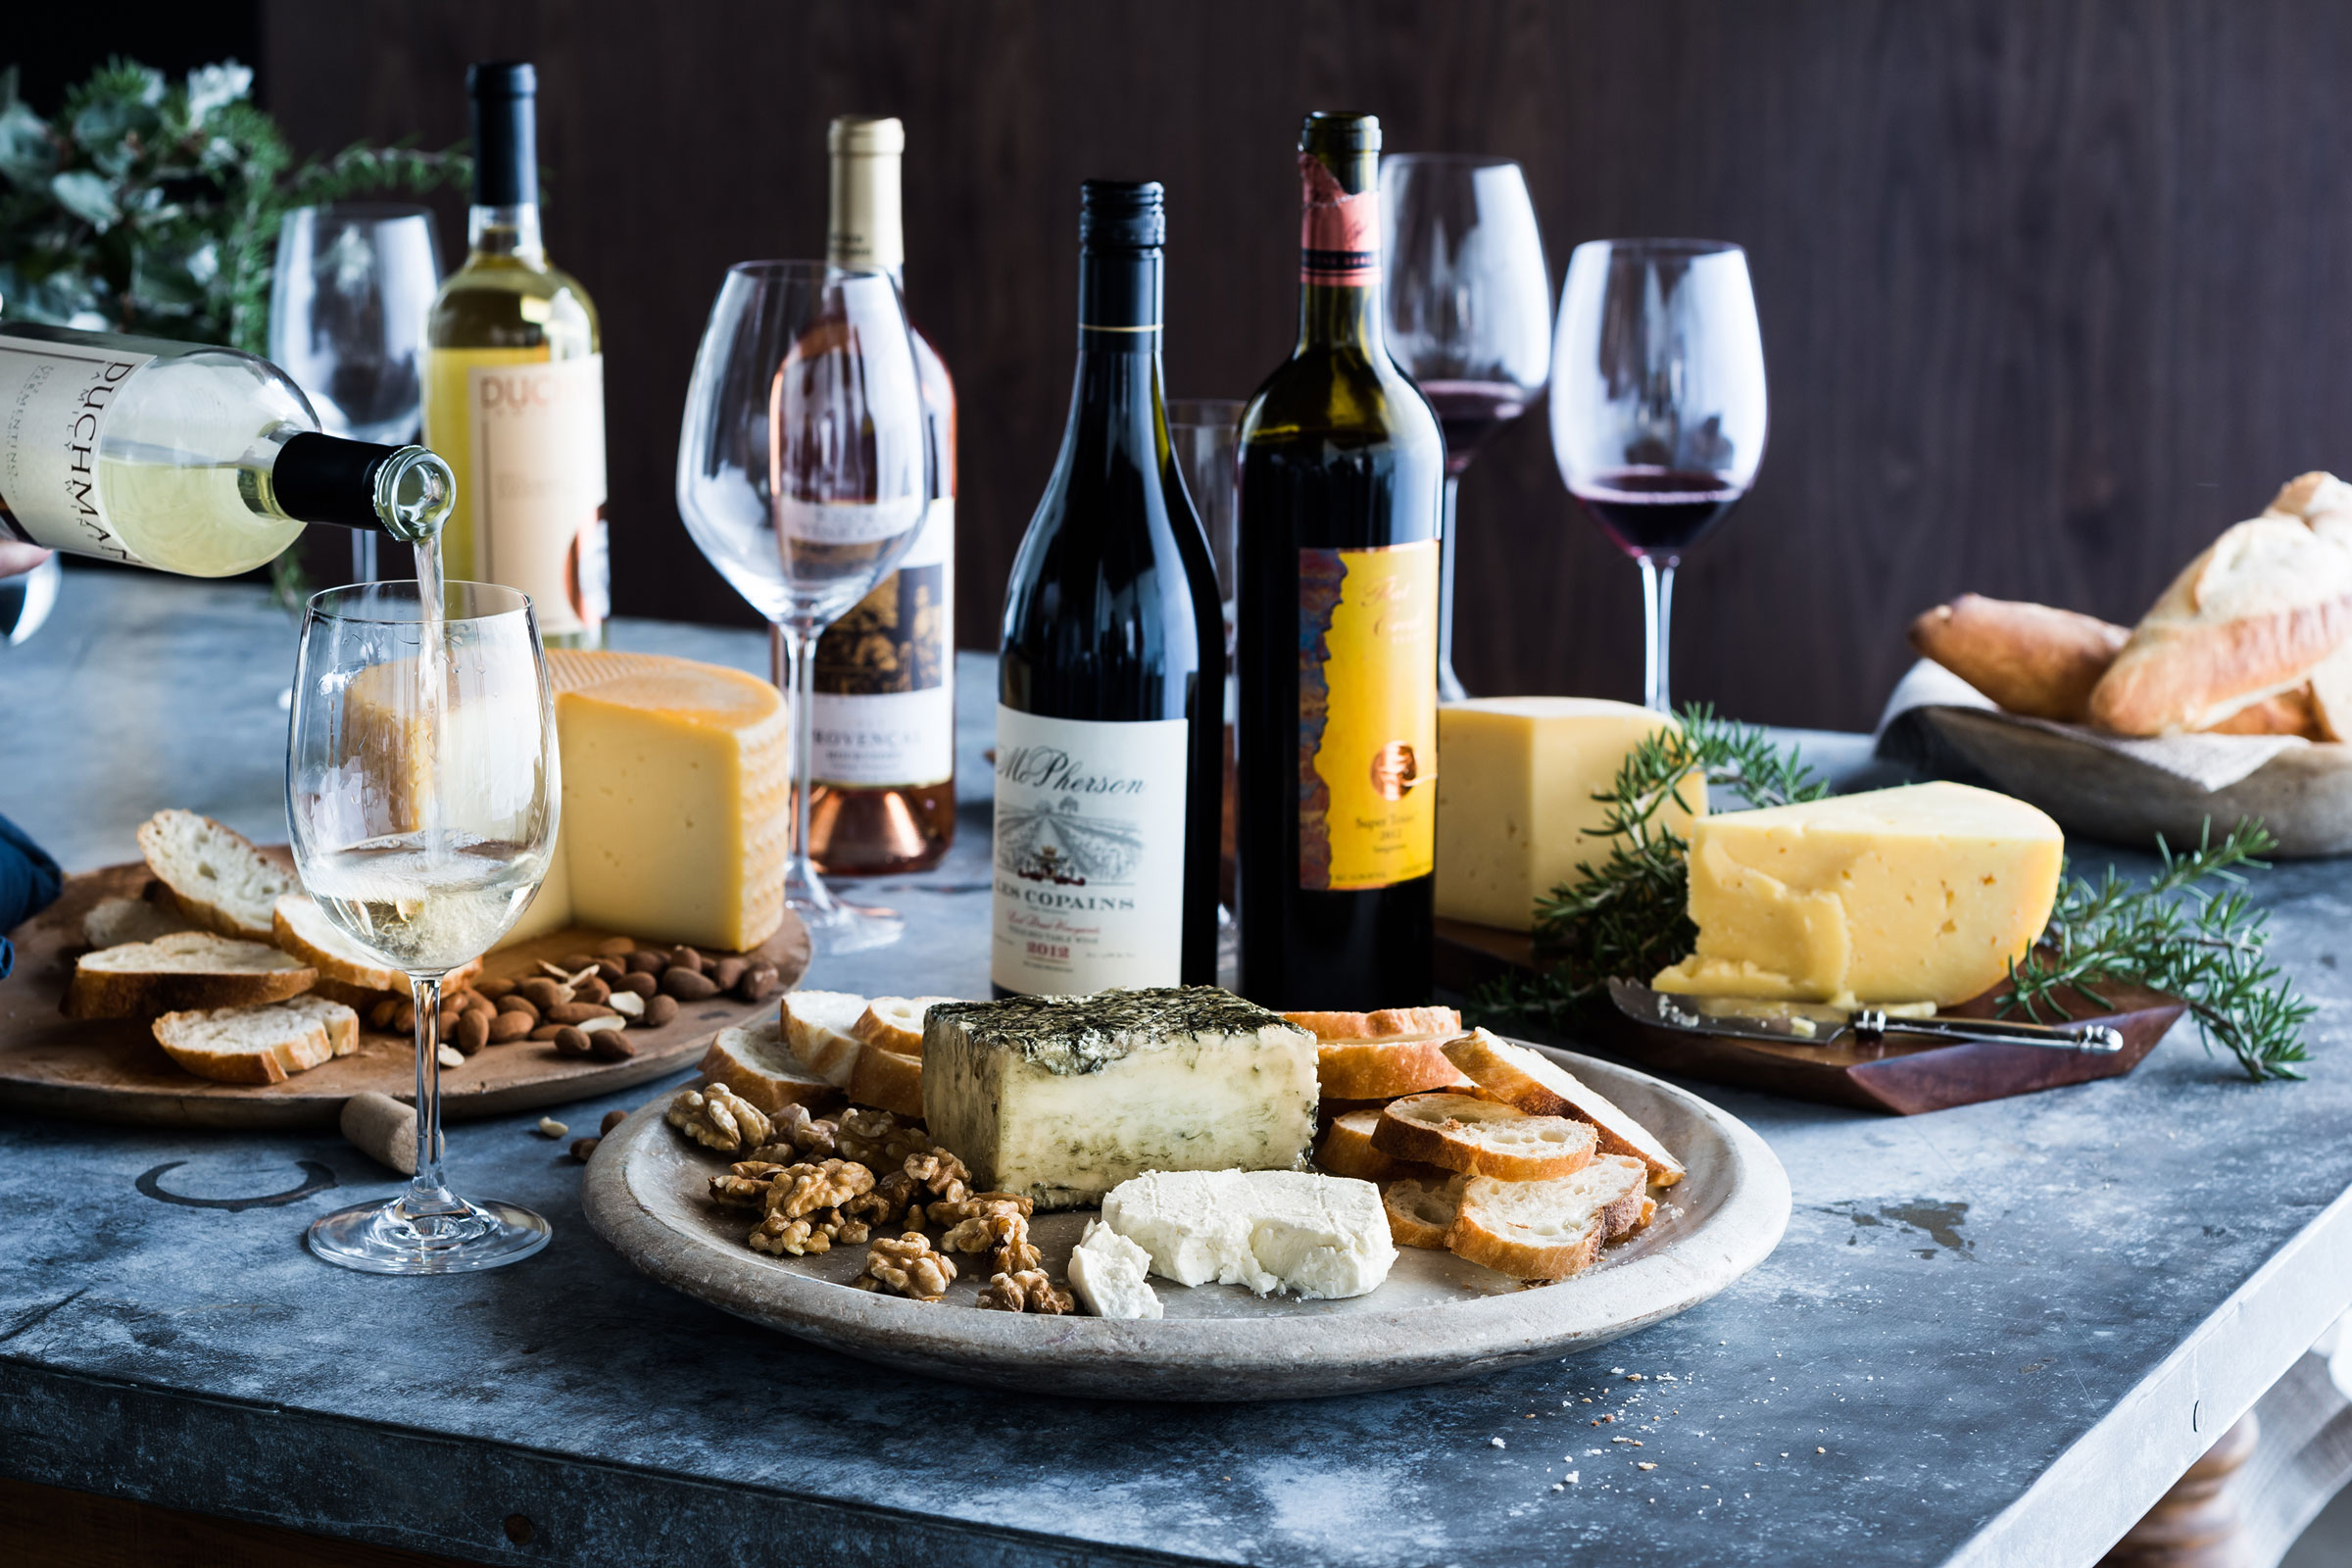 6th Annual Wine and Cheese Fundraiser